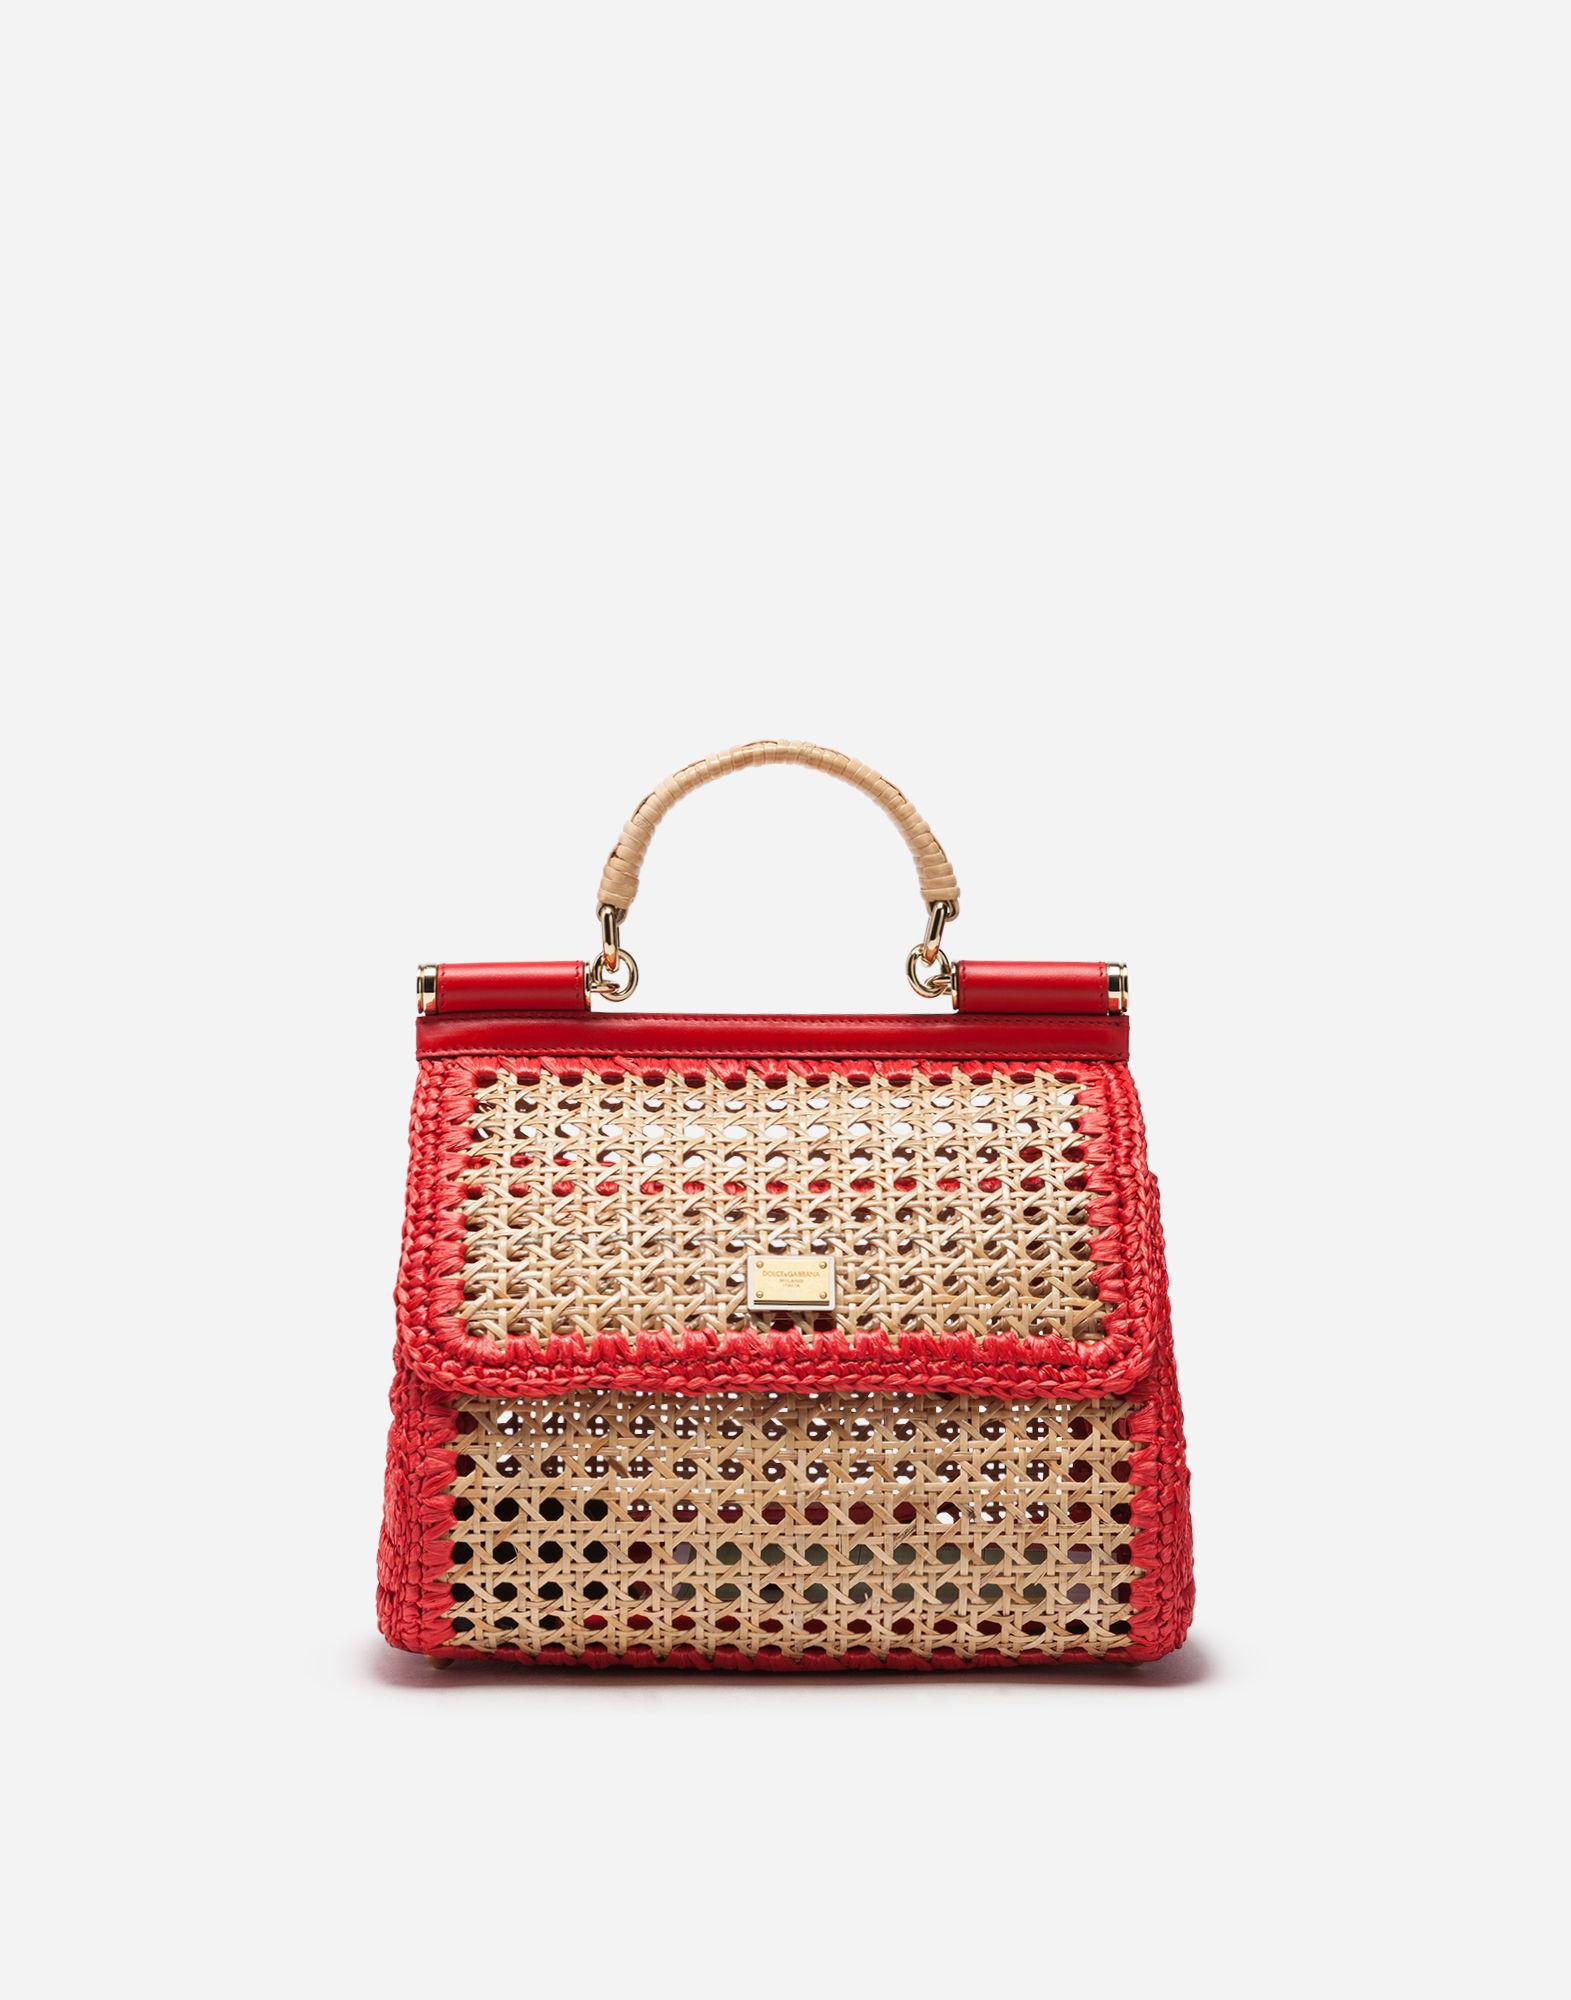 5892b7989a0 Lyst - Dolce   Gabbana Medium Sicily Bag In Mix Of Materials in Red ...